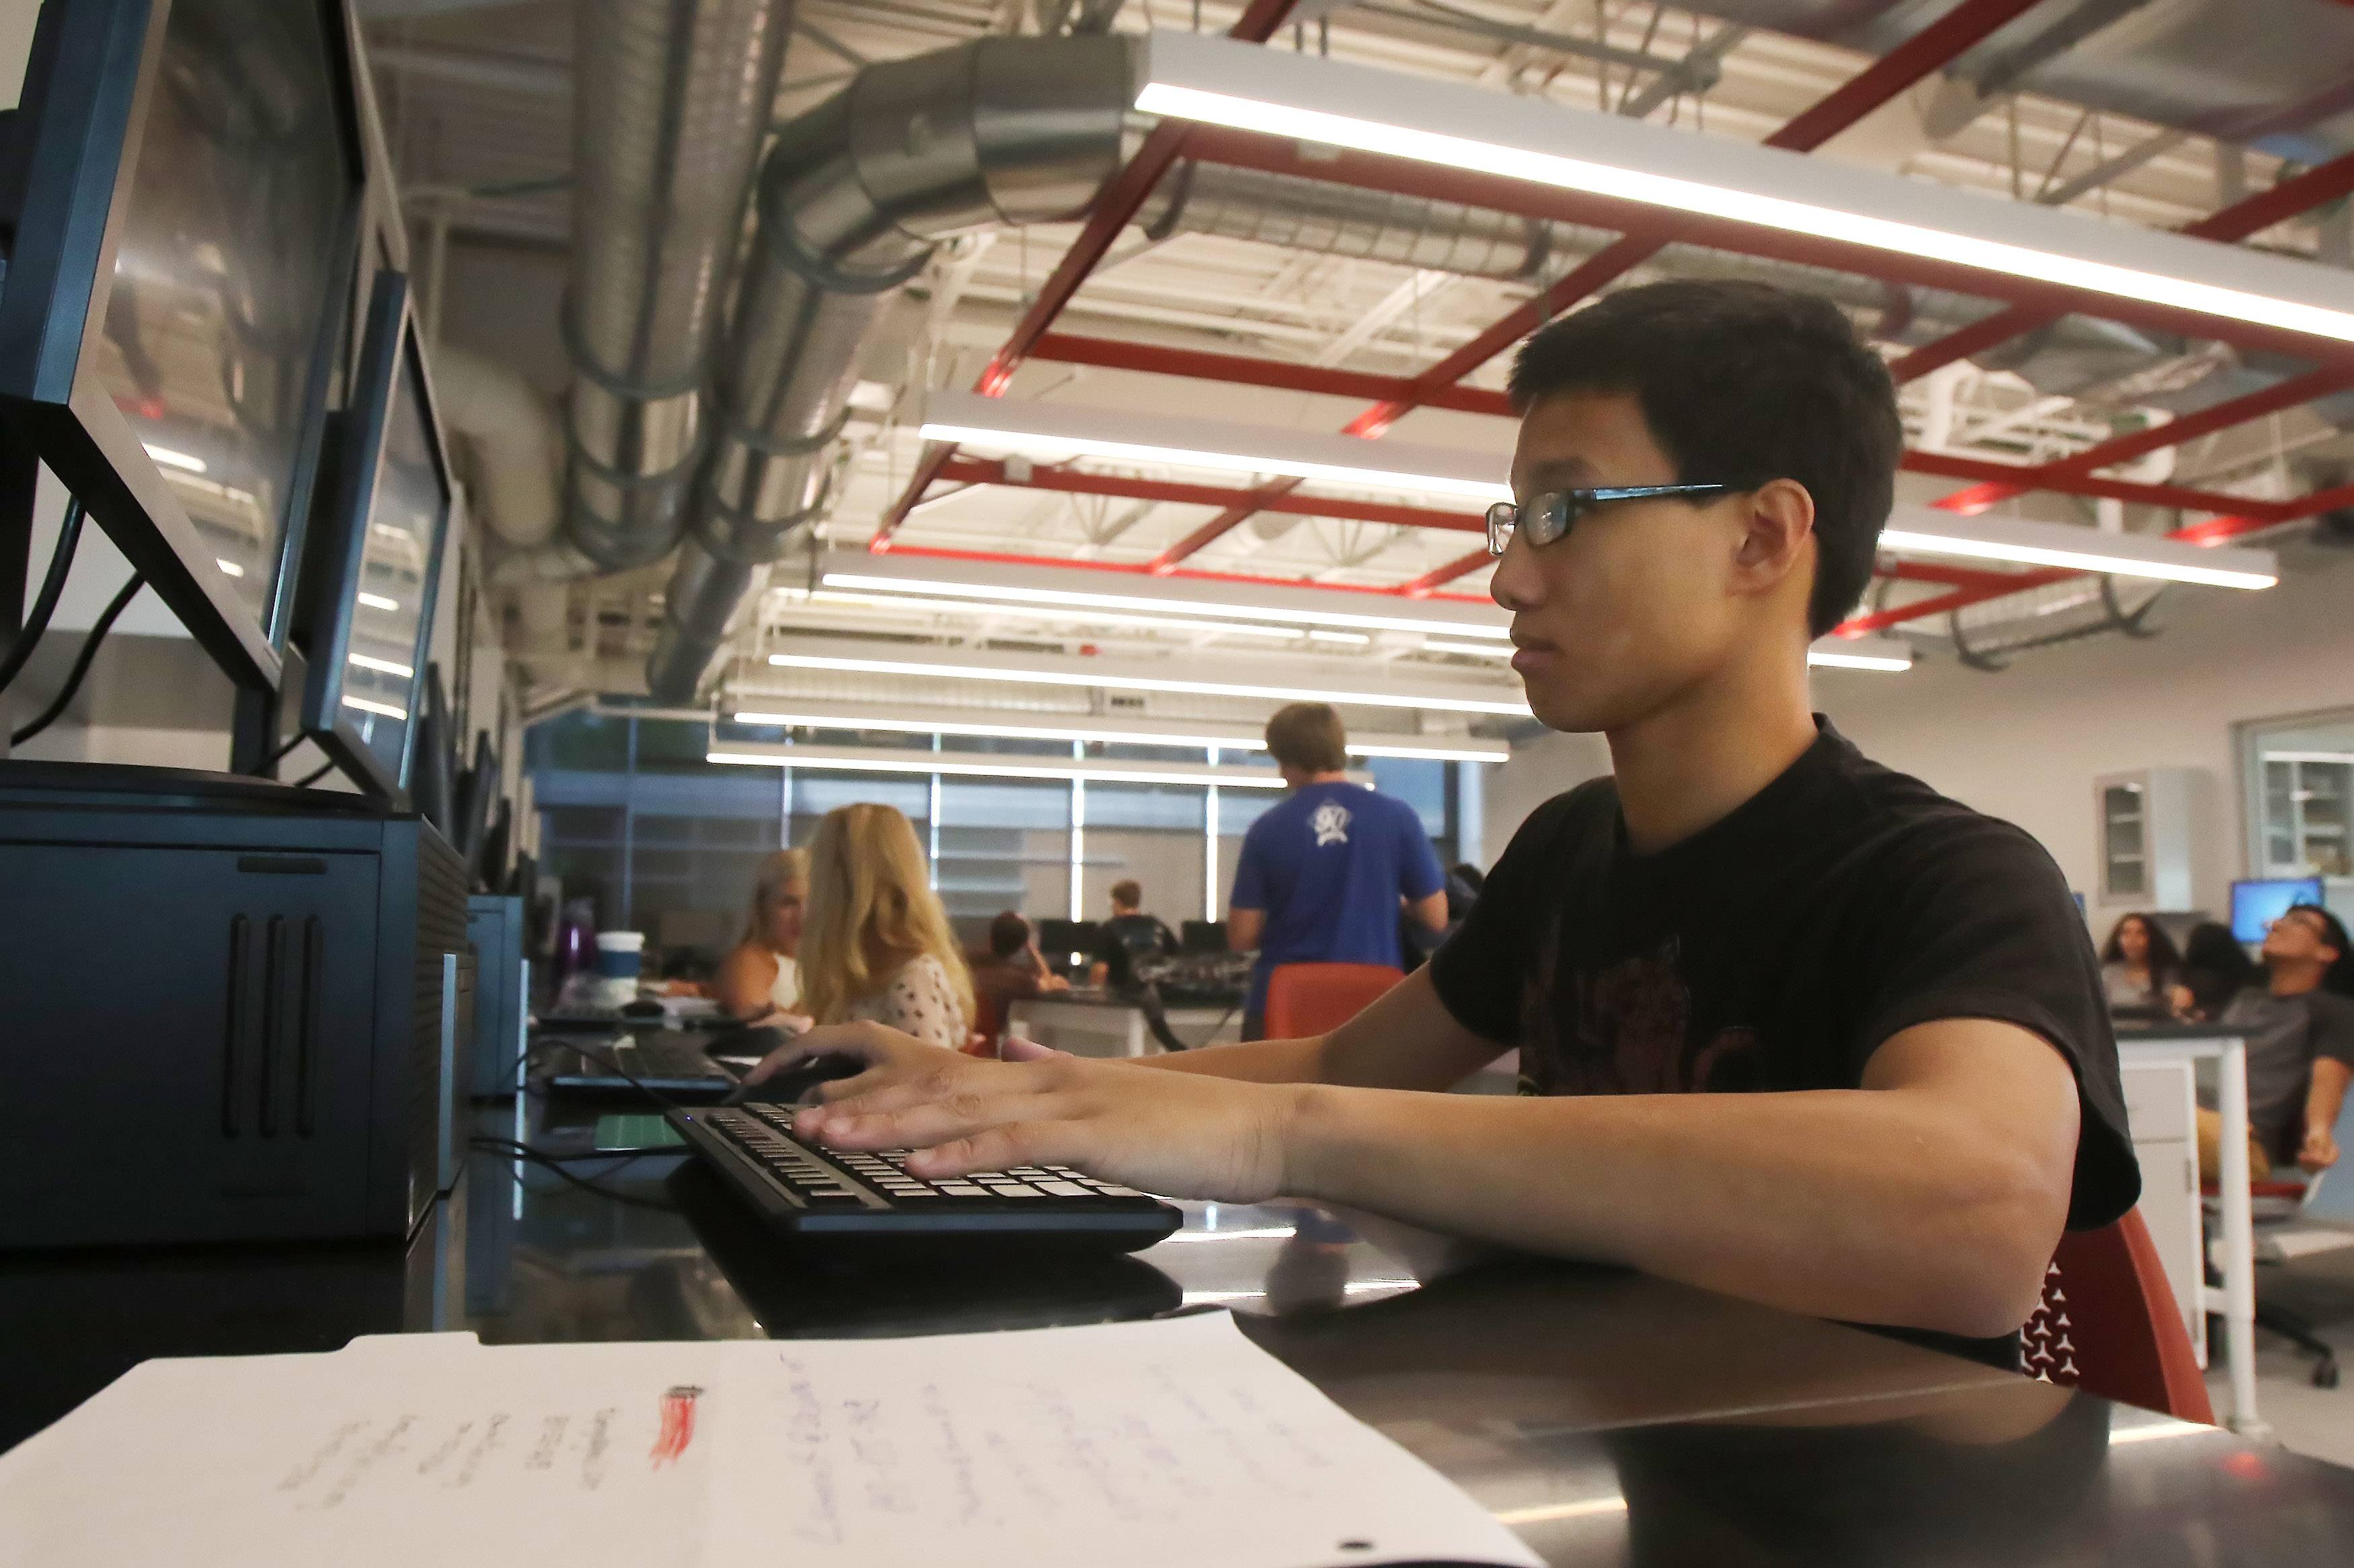 Senior Joseph Leong works on a computer in Mundelein High School's new wing for science, technology, engineering and math education. Tuesday was the first day of classes at Mundelein High for the new school year.